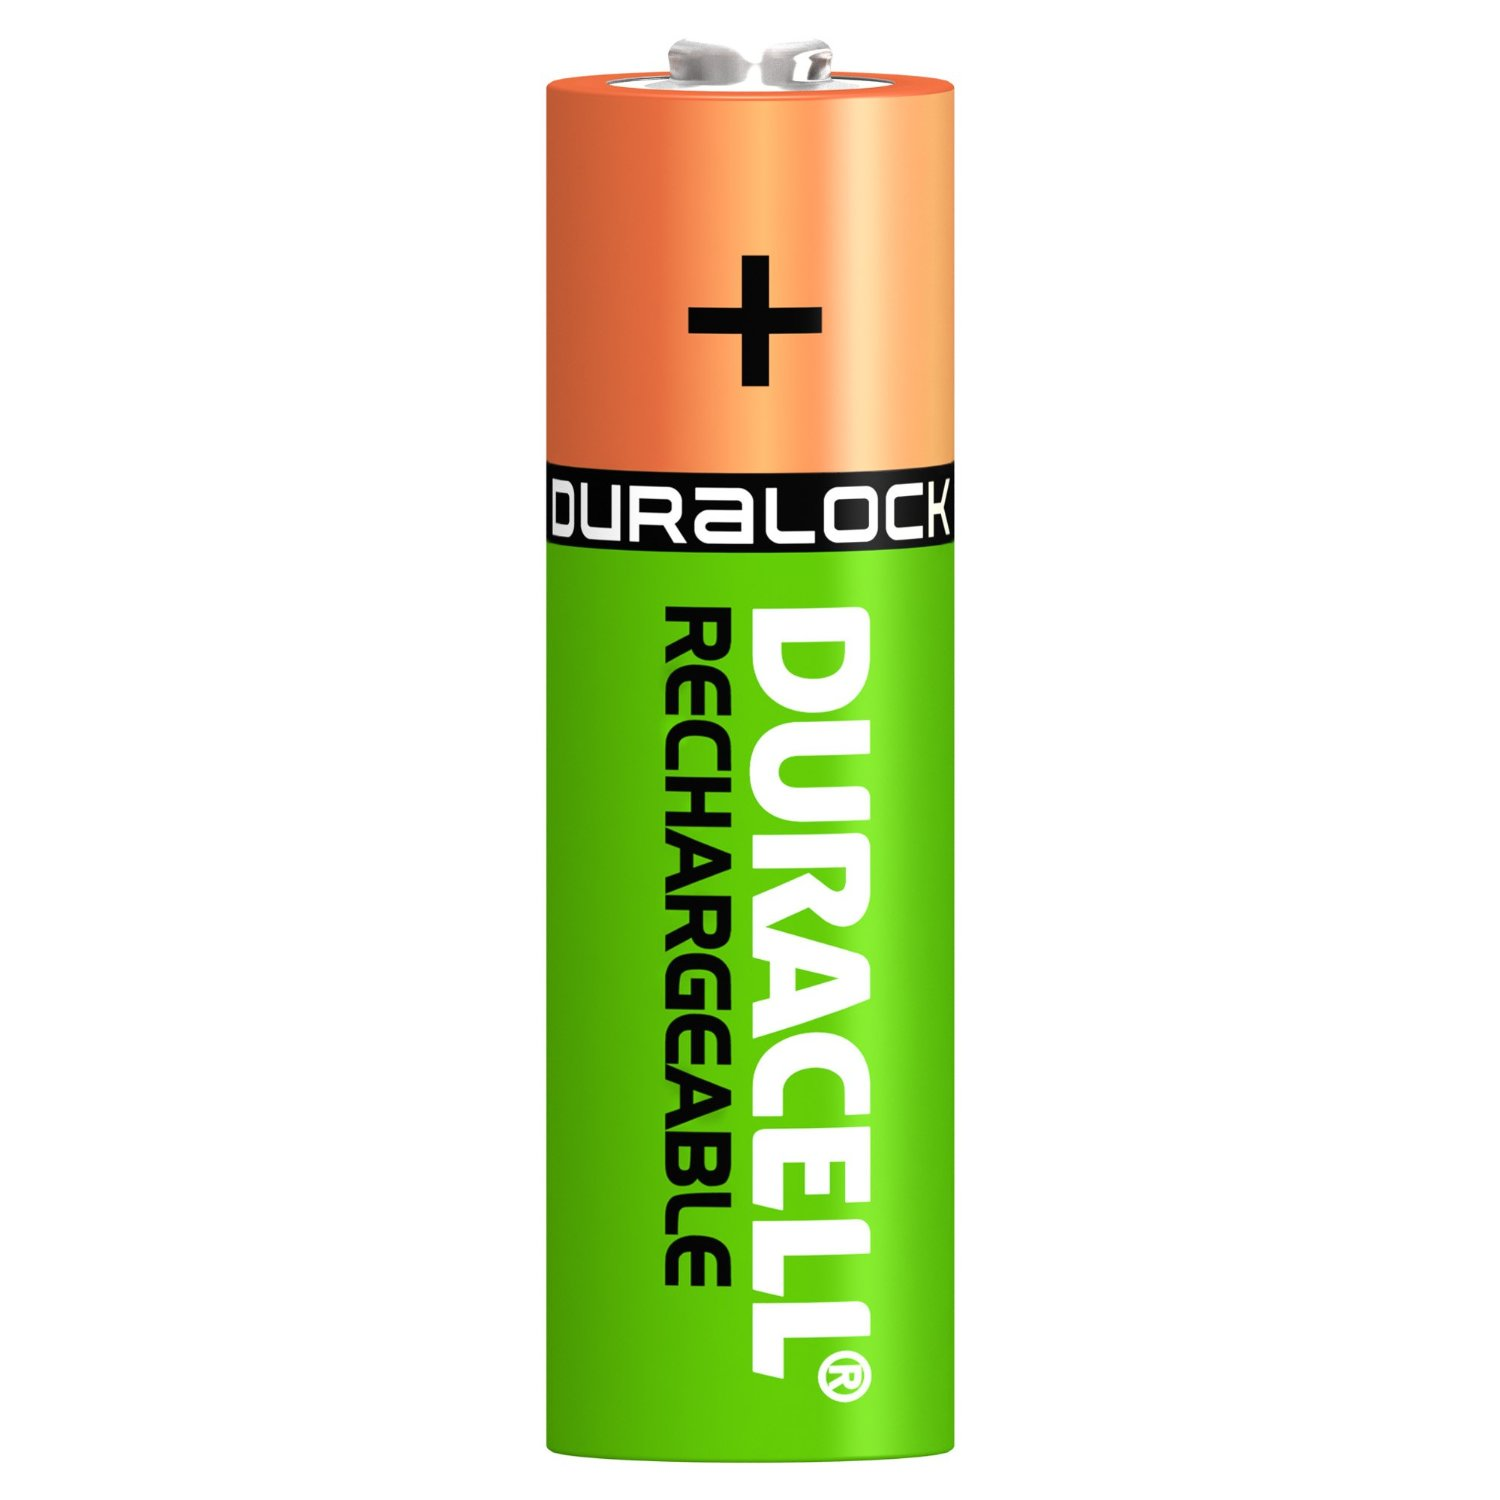 4x duracell plus aa double a 1300mah rechargeable battery batteries 81367177 ebay. Black Bedroom Furniture Sets. Home Design Ideas